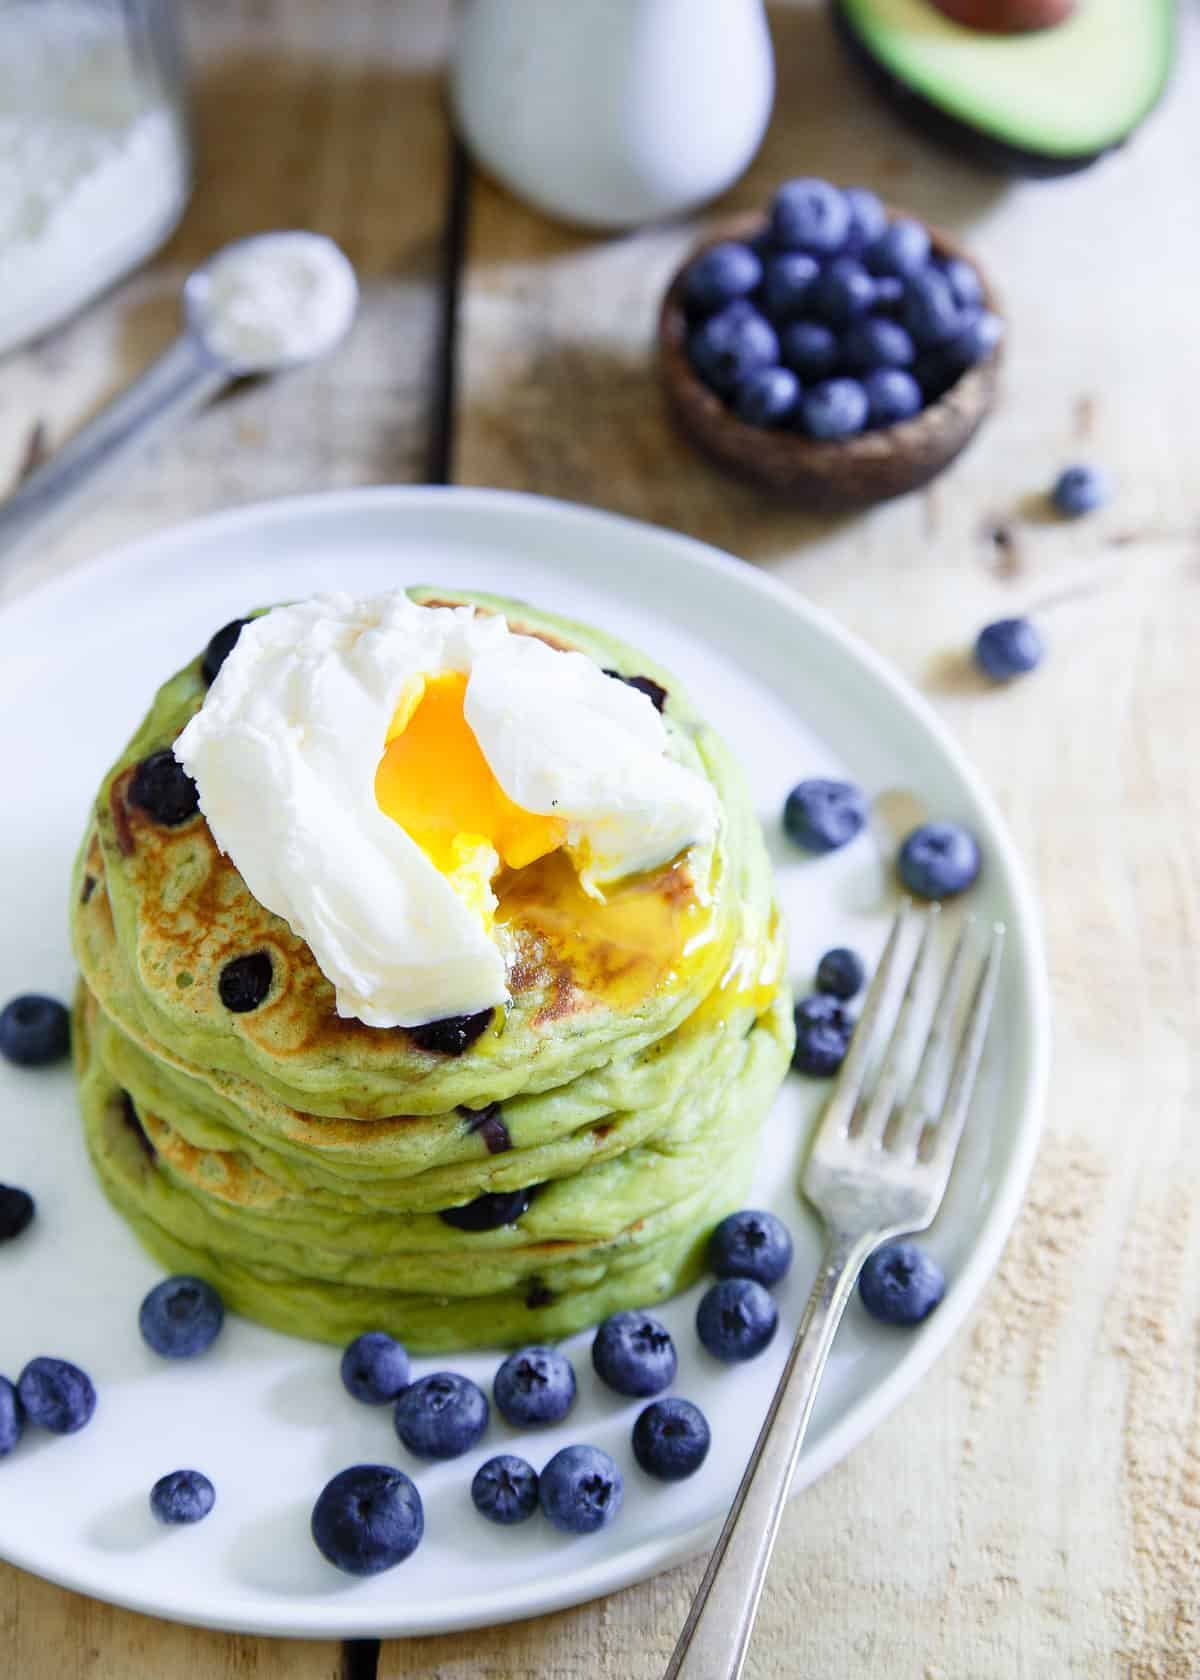 Blueberry Avocado Pancakes are thick, decadent and perfect with a poached egg on top.